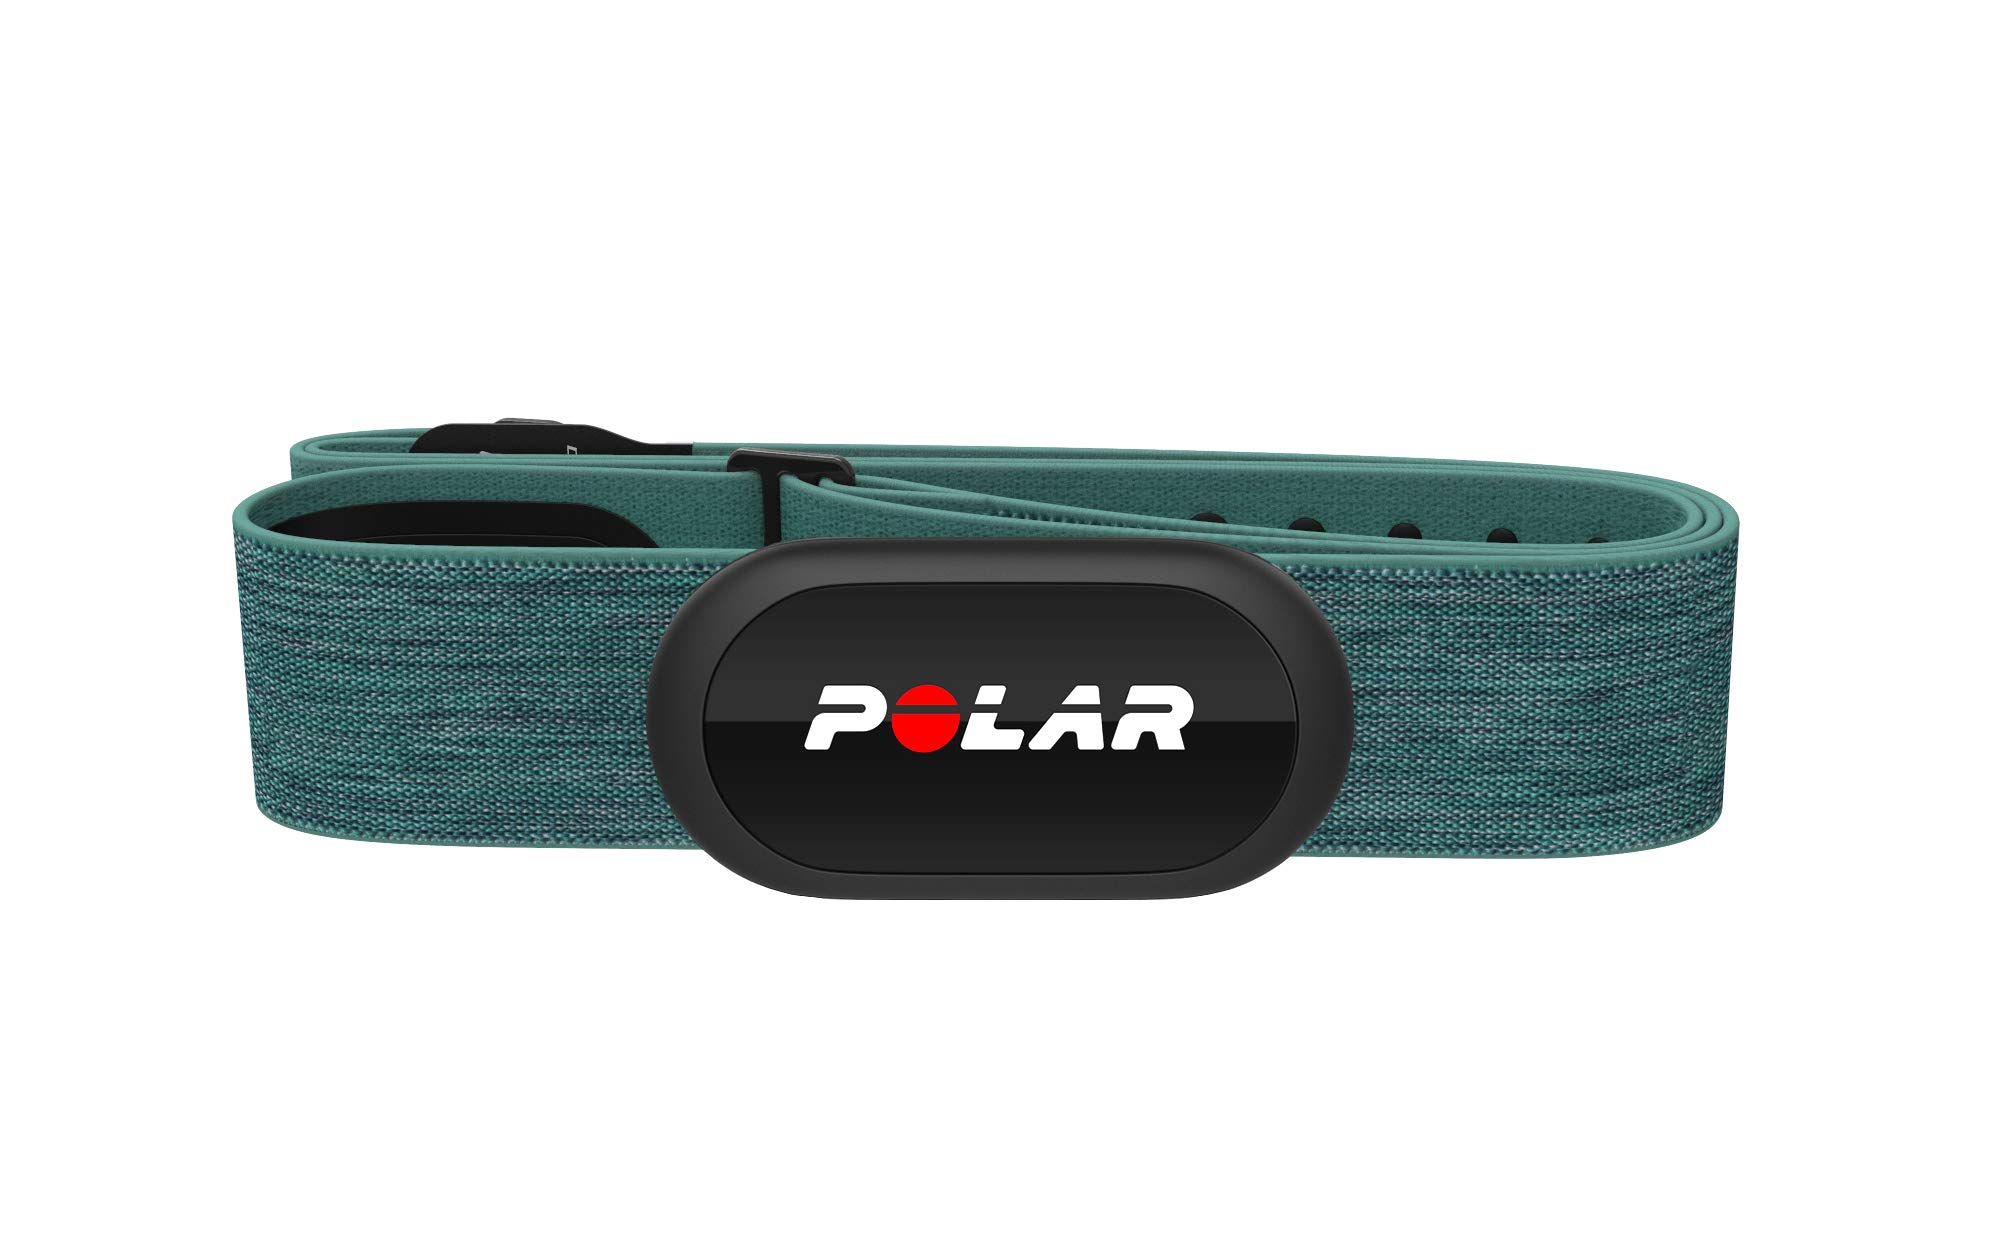 Polar H10 Heart Rate Monitor, Bluetooth HRM Chest Strap - iPhone & Android Compatible, Turquoise